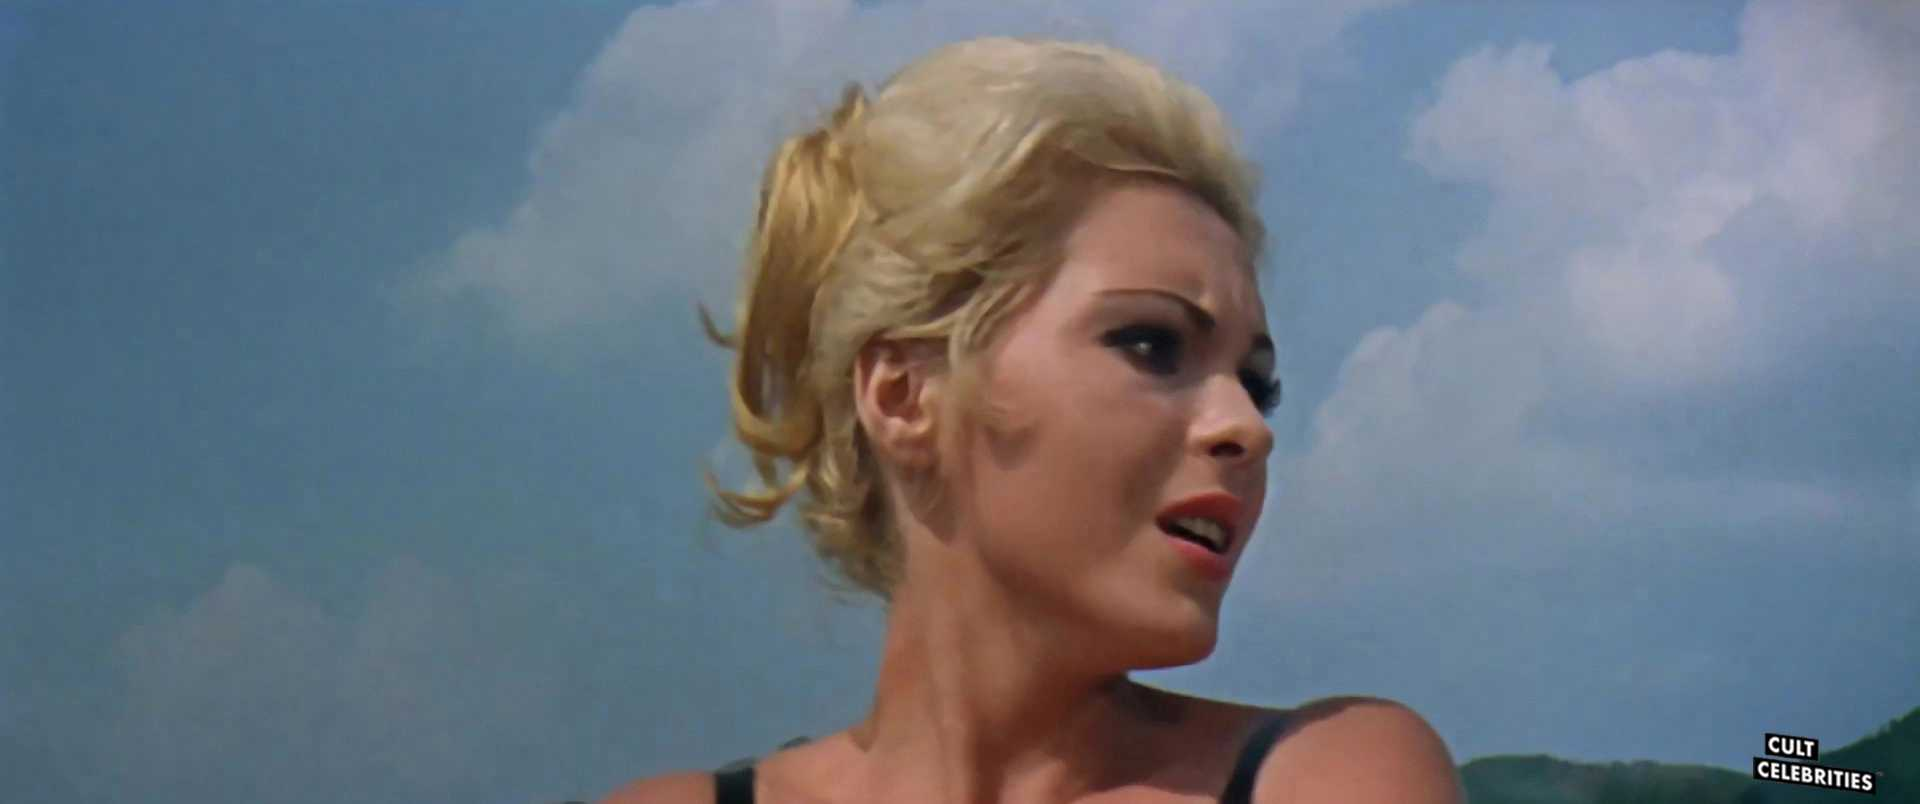 Maria Rohm in Five Golden Dragons (1967)